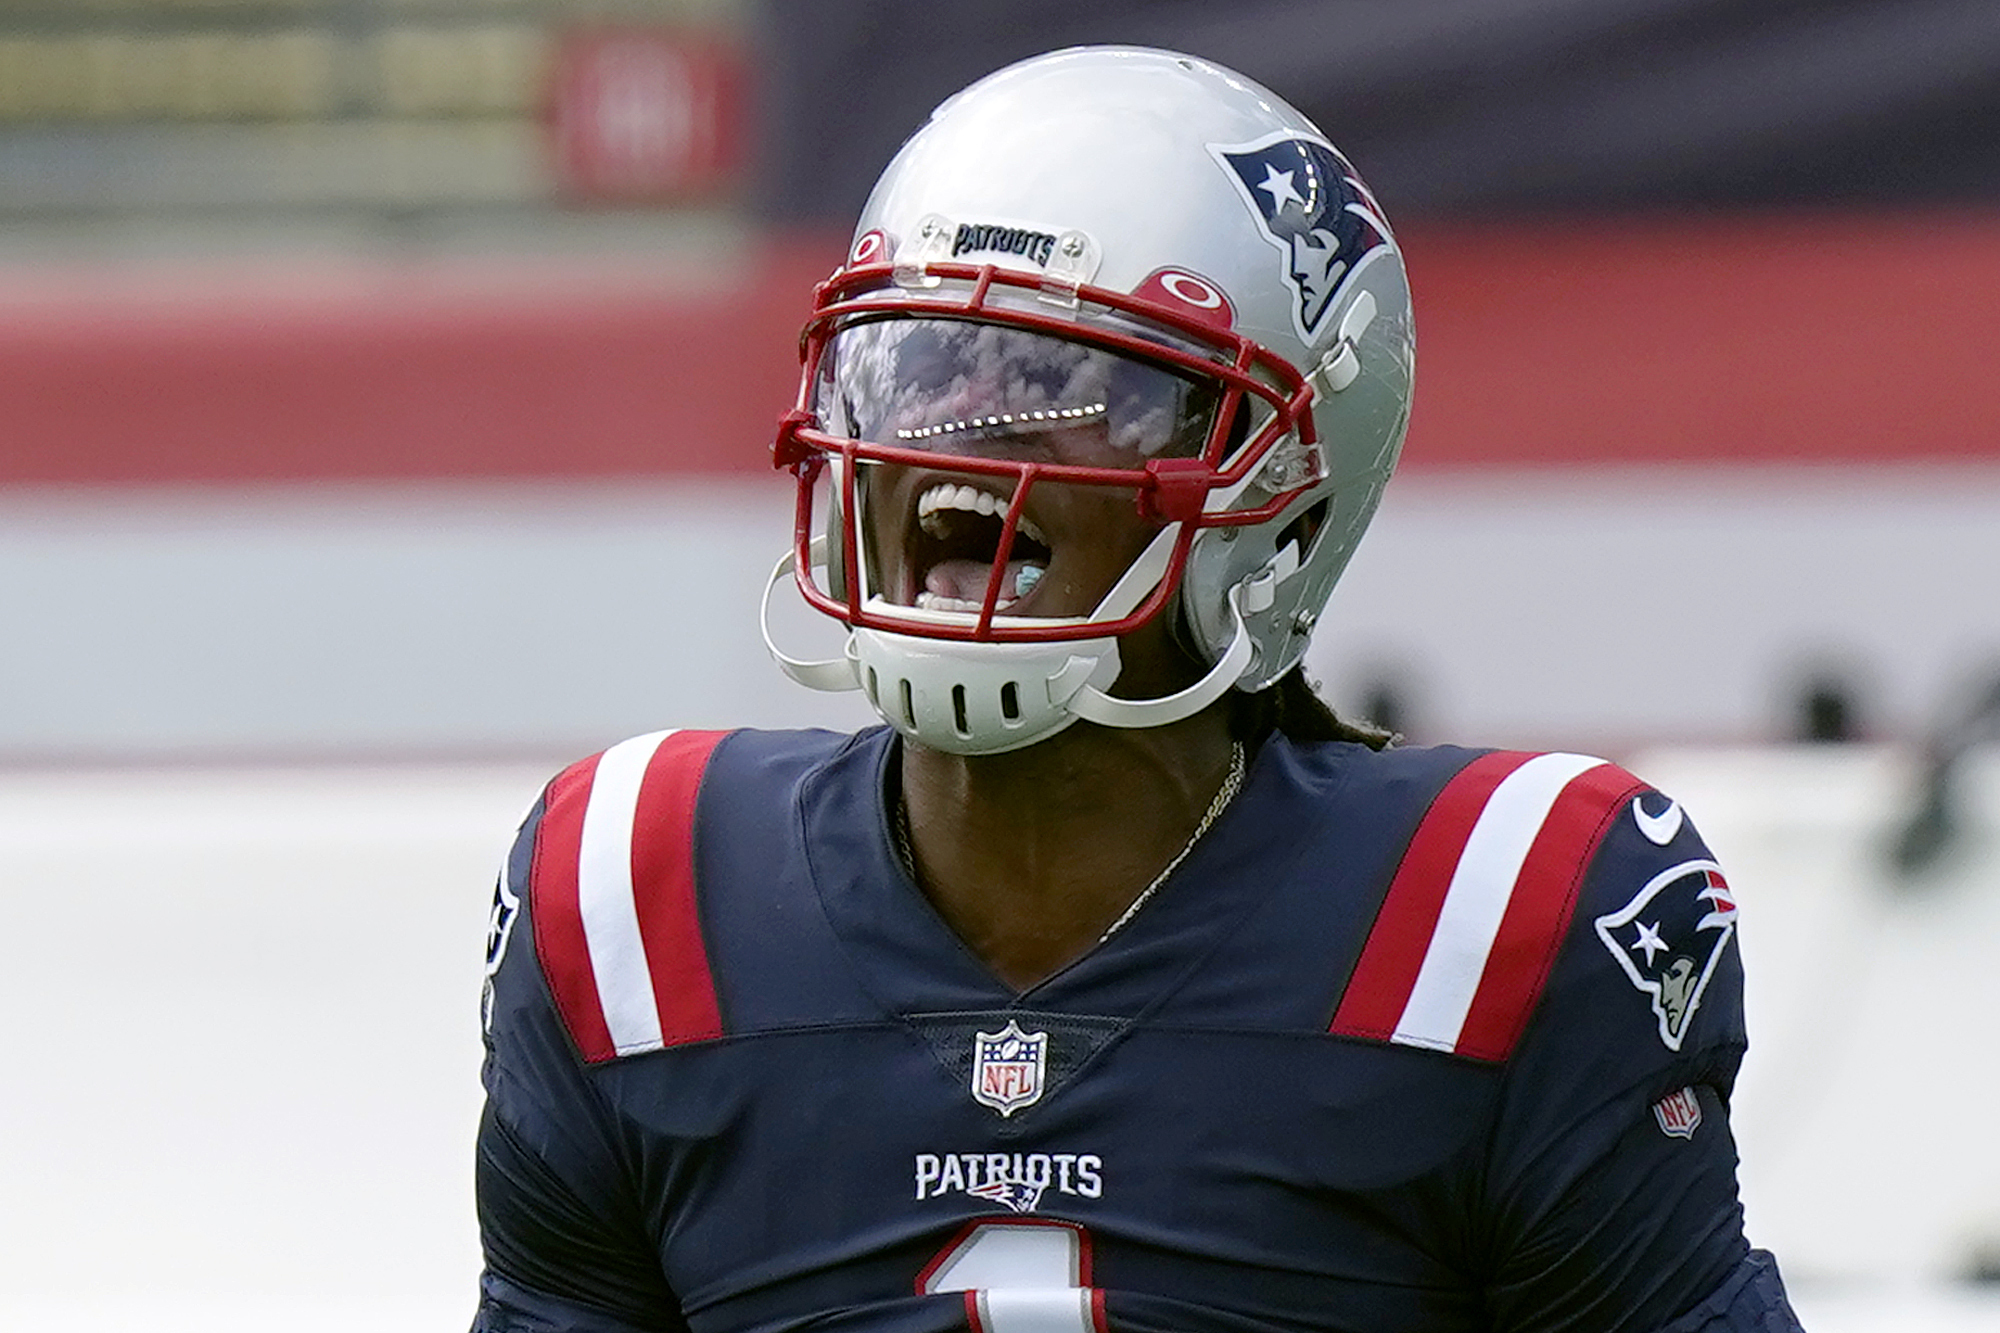 New England Patriots quarterback Cam Newton shouts as he warms up before an NFL football game against the Miami Dolphins, Sunday, Sept. 13, 2020, in Foxborough, Mass. (AP Photo/Steven Senne)